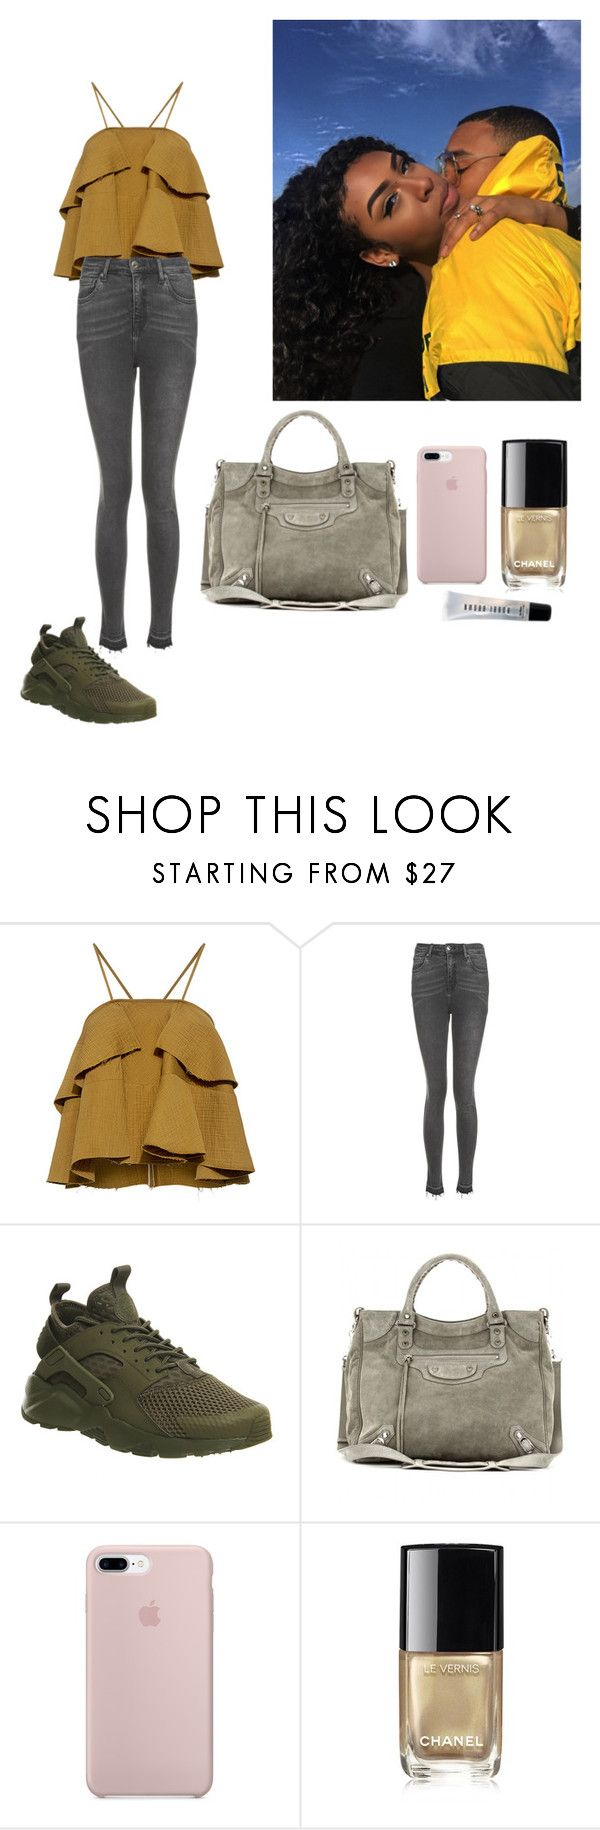 """""""Kaki 2 #outfit"""" by morbsv ❤ liked on Polyvore featuring Rachel Comey, Topshop, NIKE, Balenciaga, Chanel and Bobbi Brown Cosmetics"""